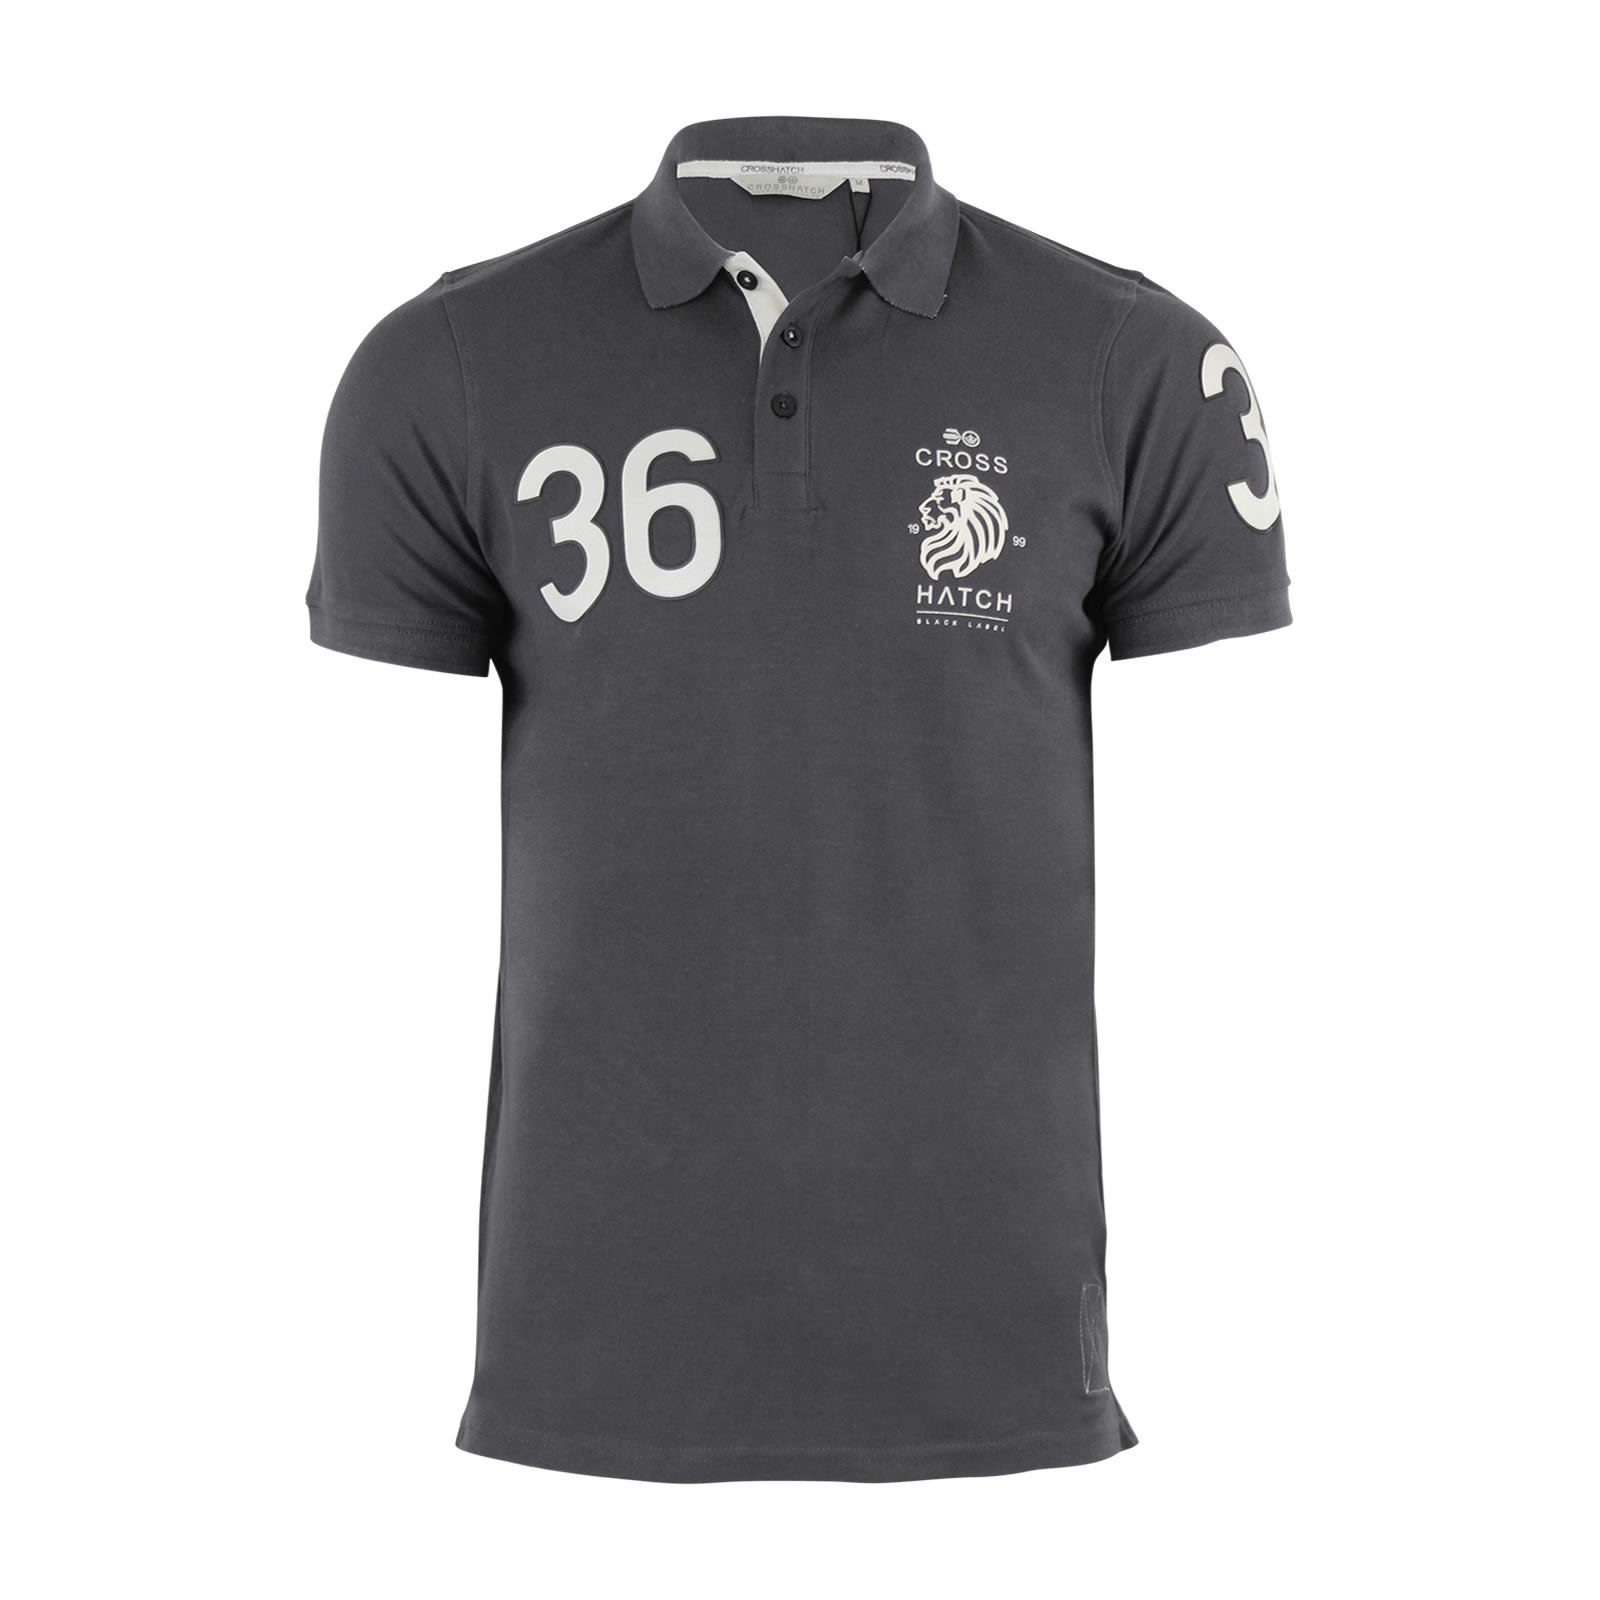 Crosshatch-Mens-Polo-T-Shirt-Pique-Polo-Cotton-Collared-Short-Sleeve-T-Shirt thumbnail 21